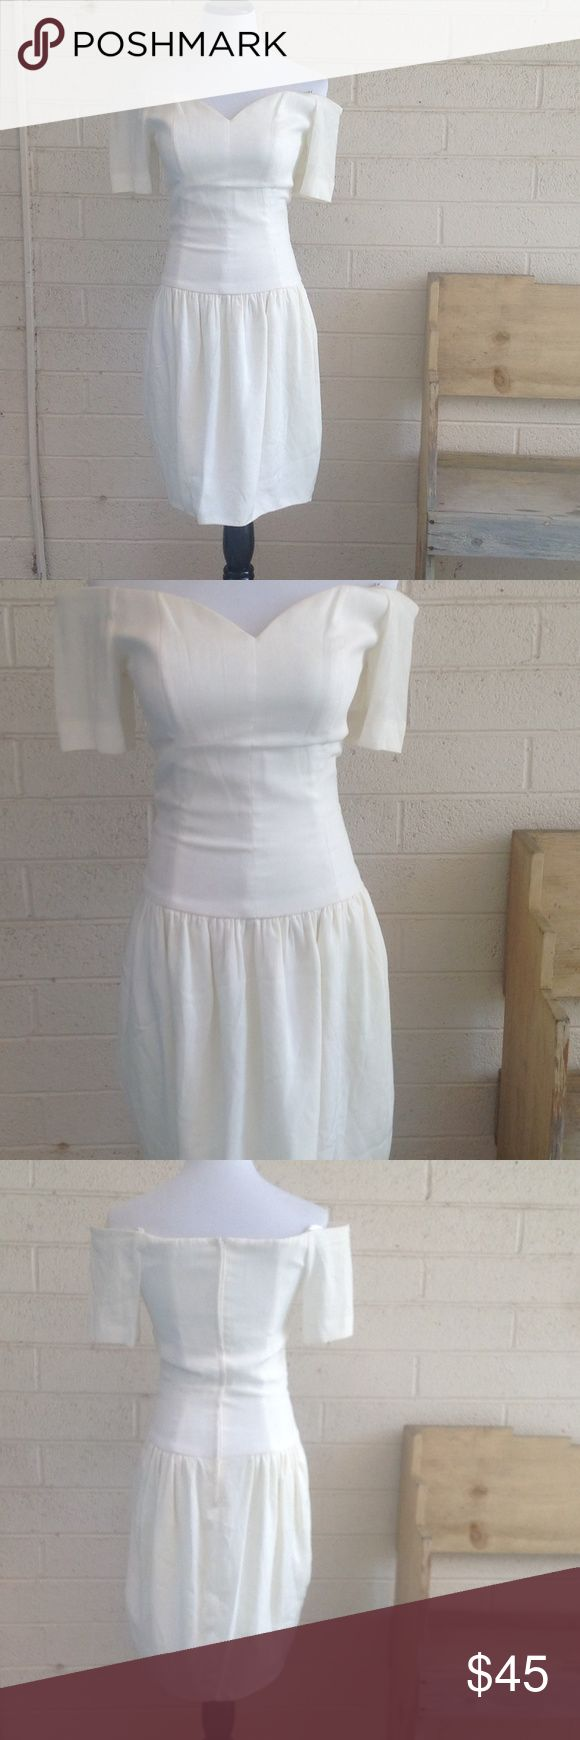 "Vintage Nicole Miller Cream Dress in size 8 Gently worn vintage Nicole Miller cocktail dress in cream. Classic vintage style! Sweetheart neckline with dropped waist. Sleeves are off the shoulder with wire inserts to make them ""poof"". Has lining throughout dress. Perfect for wedding season or prom! Nicole Miller Dresses Midi"